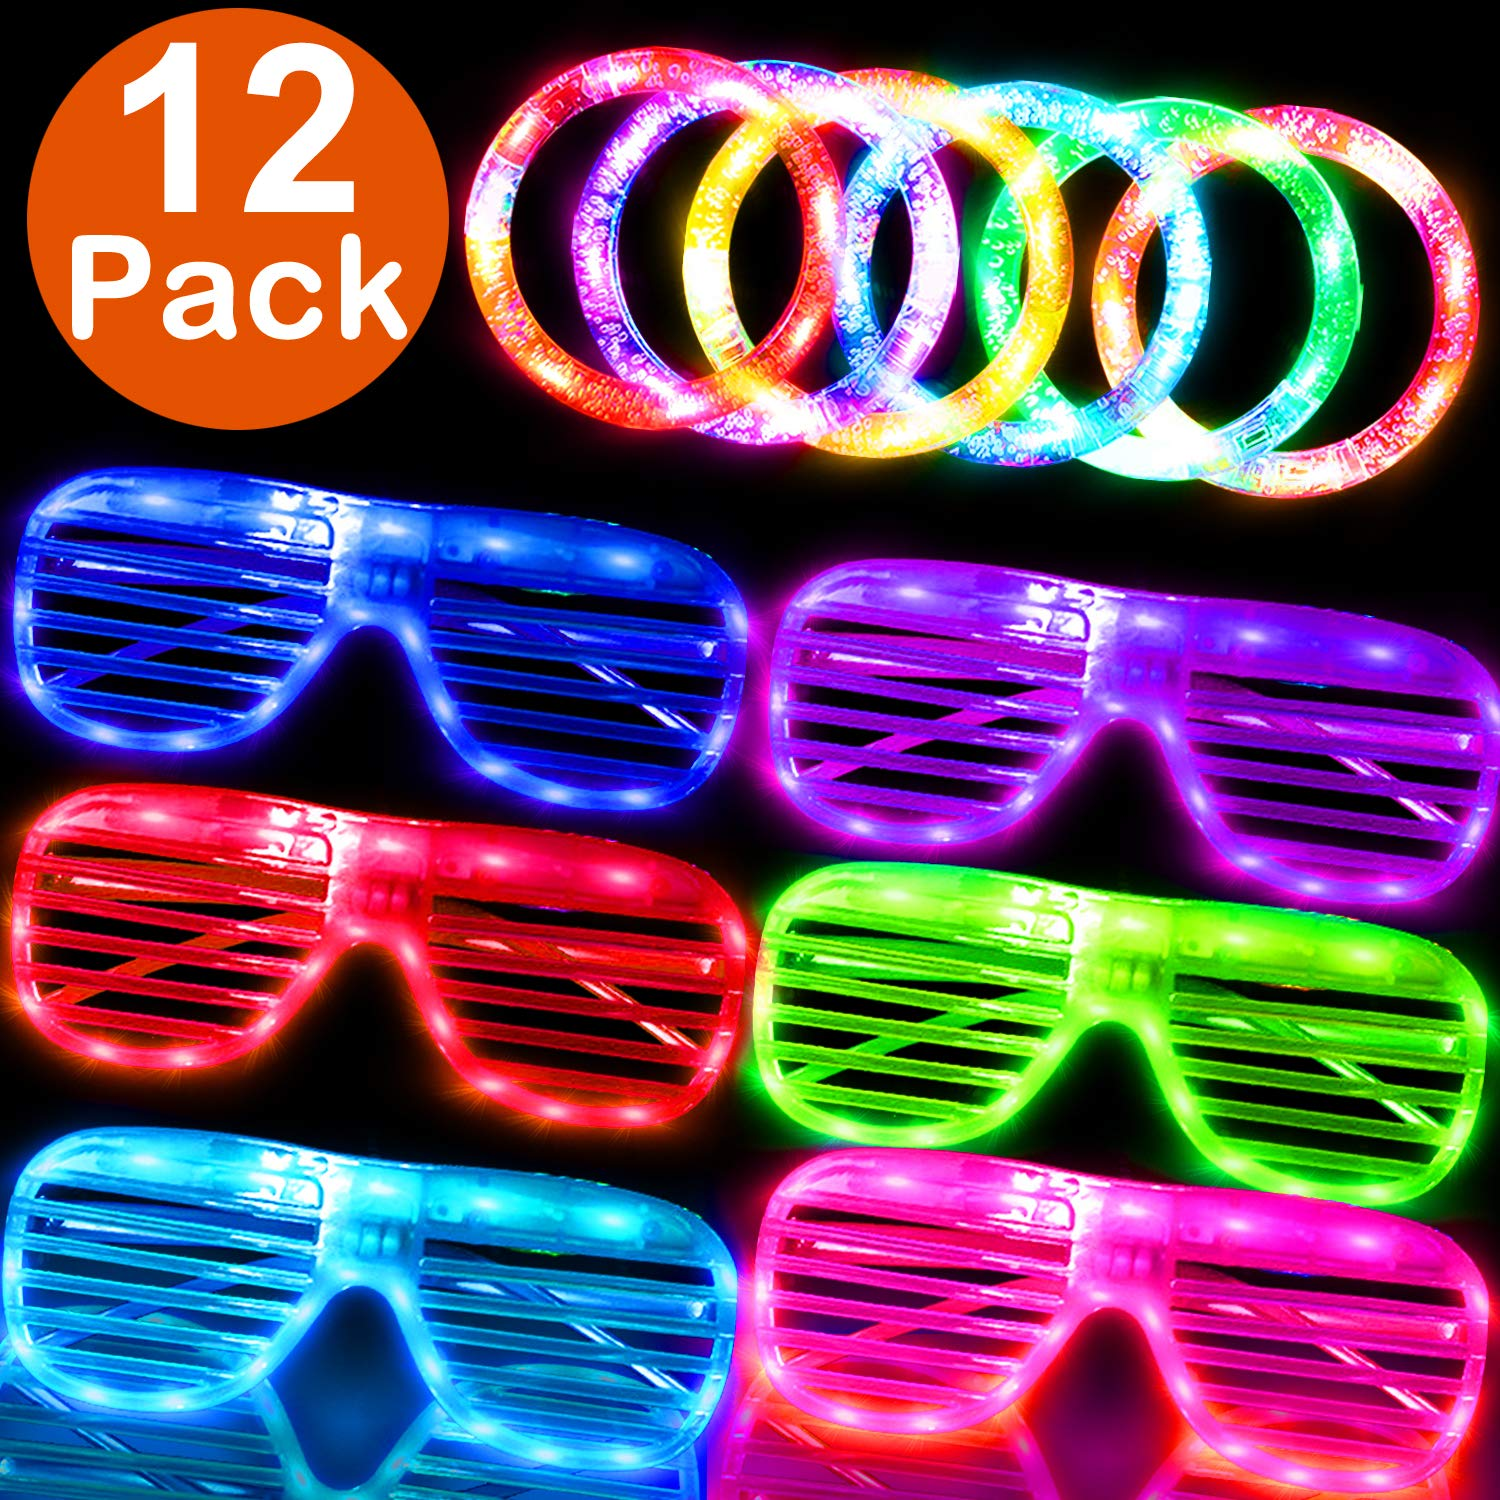 LED Light Up Toys Halloween Glow In The Dark Party Favor Decorations for Kids Adults - 12 Pack 6 LED Light Up Glasses 6 Flashing Bracelet Party Suppiles Set Halloween Christmas Birthday Party Decor